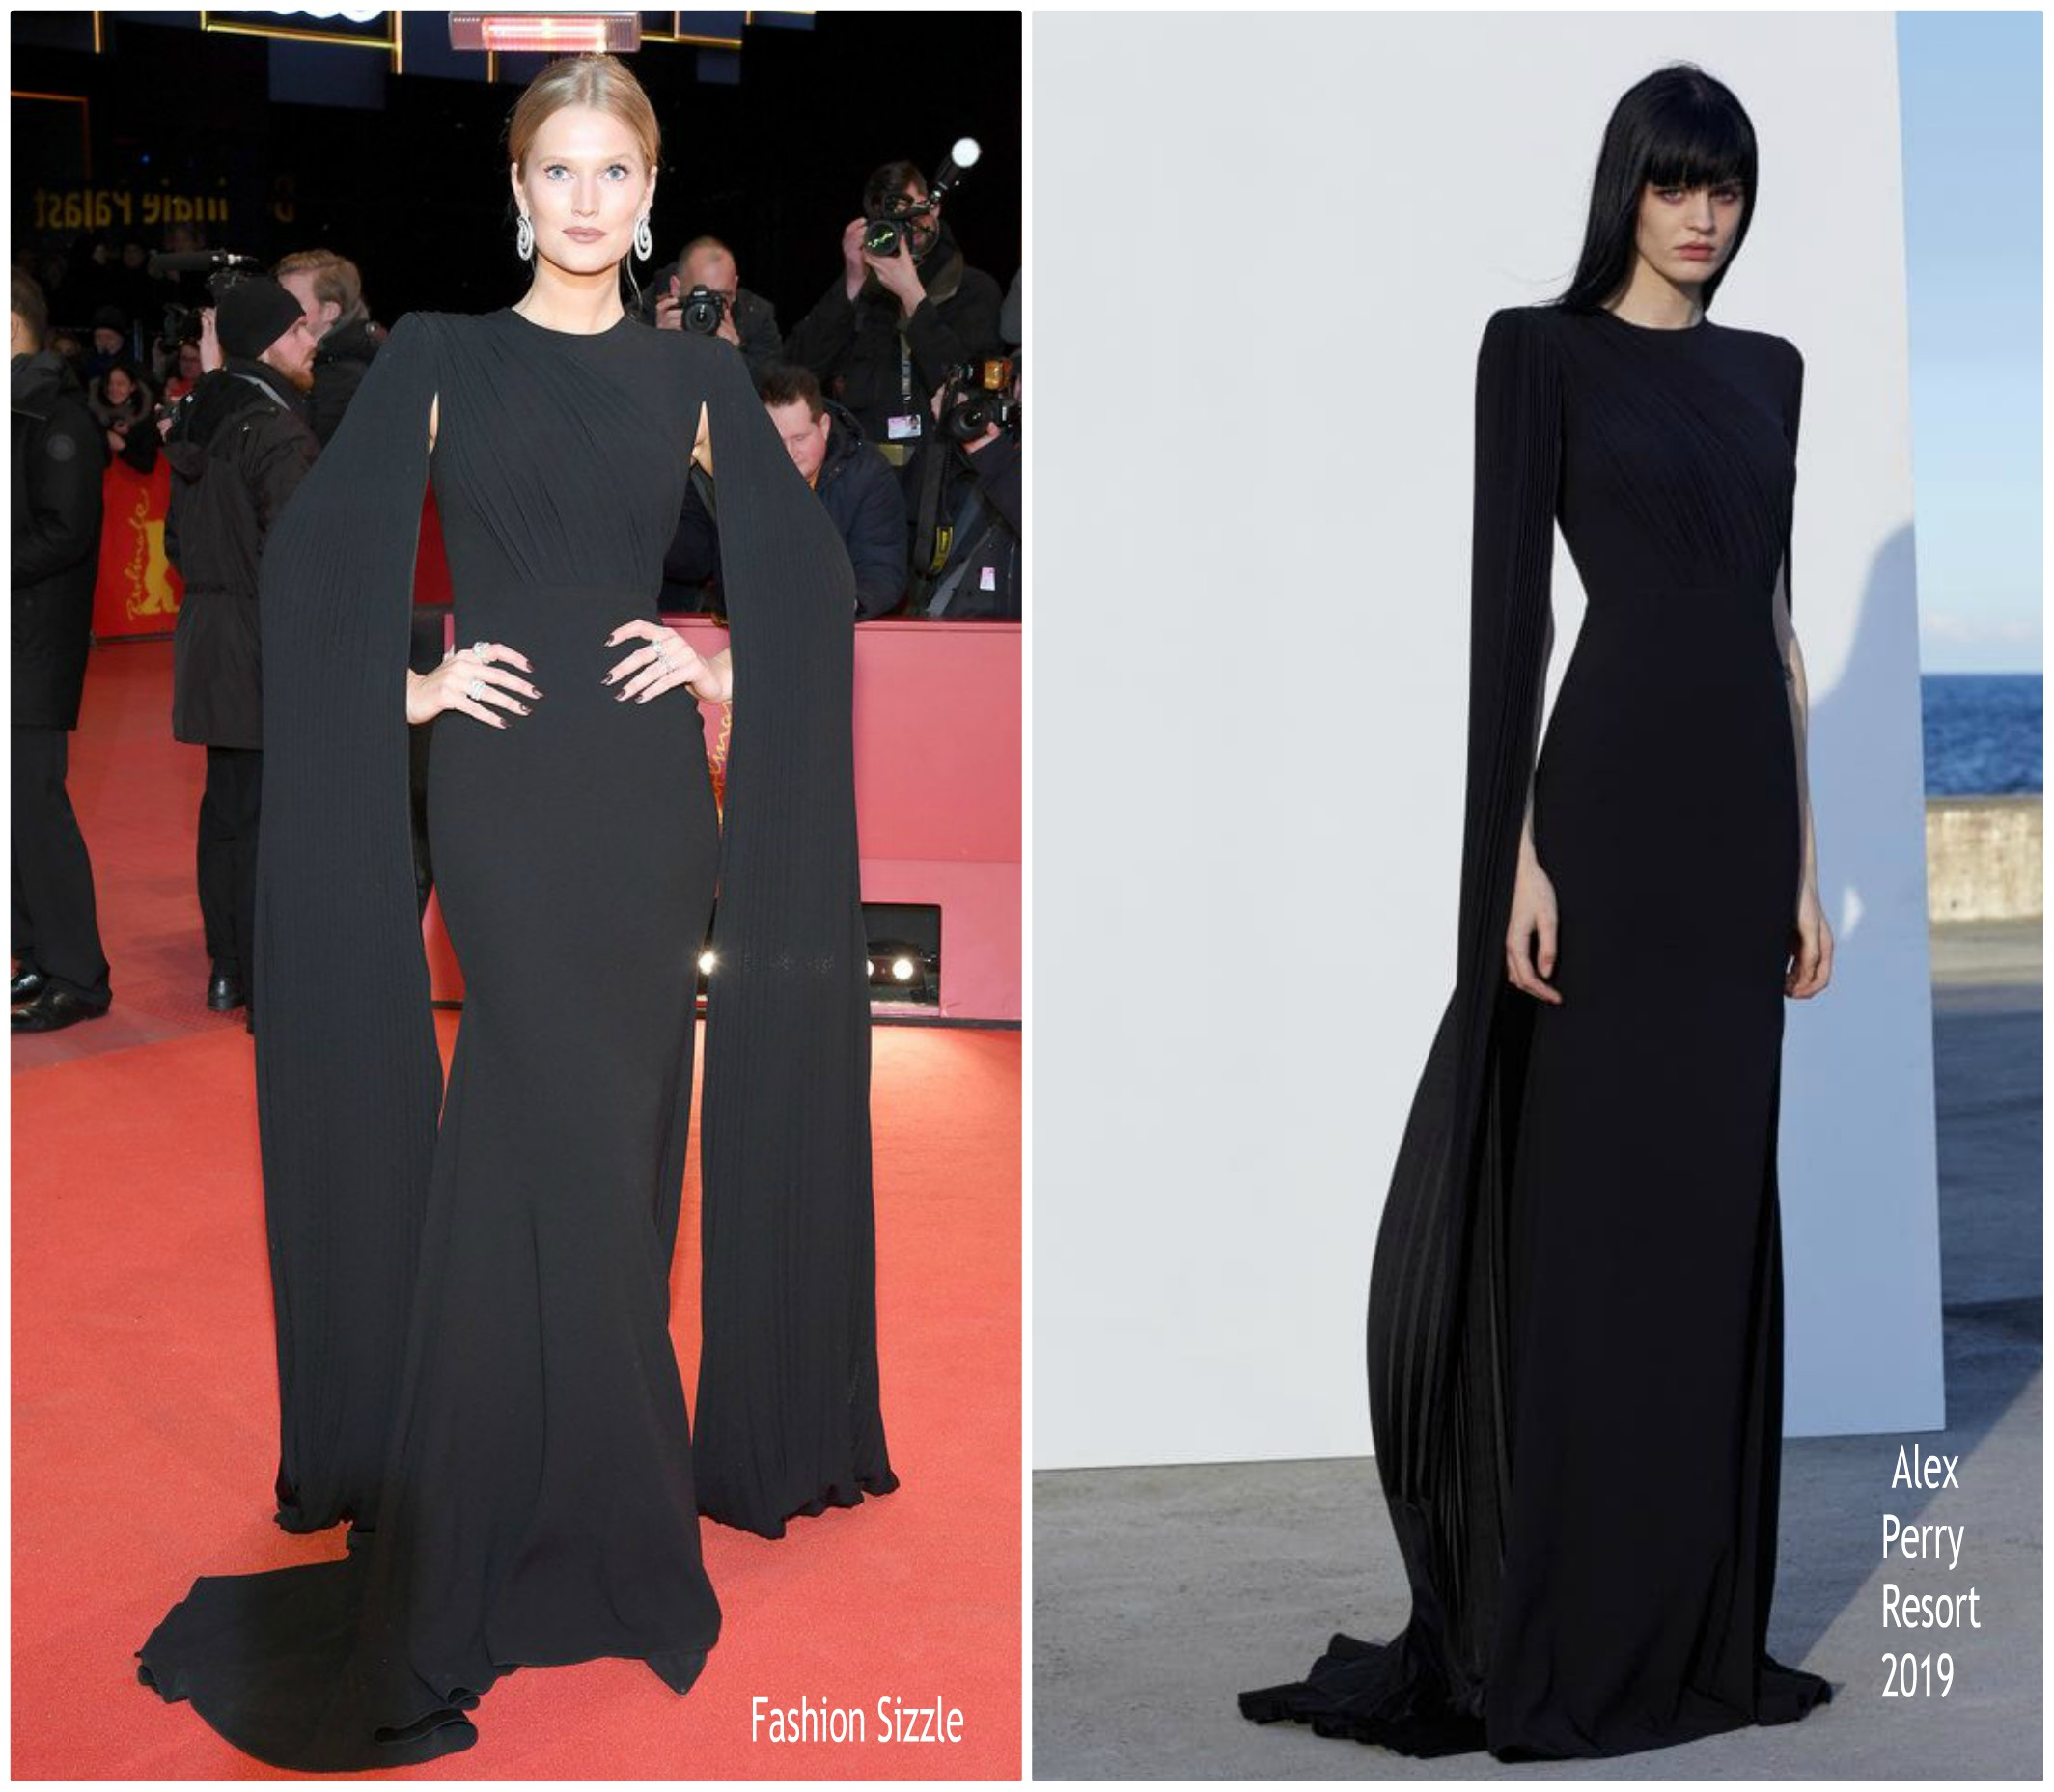 toni-garrn-in-alex-perry-the-kindness-of-strangers-berlinale-film-festival-premiere